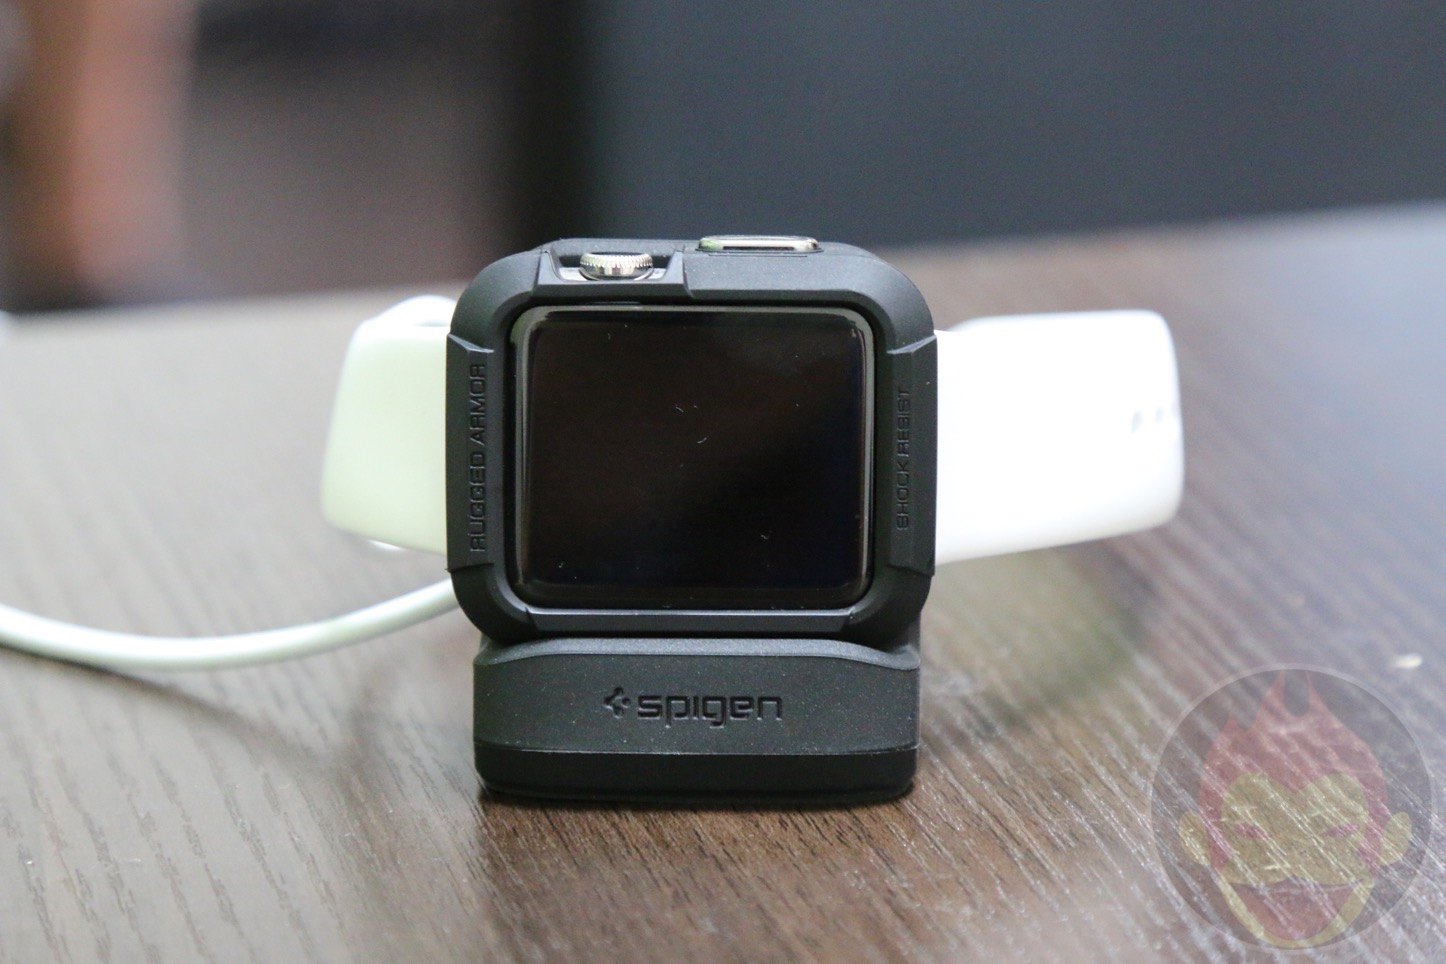 Spigen-S350-Apple-Watch-Stand-19.JPG